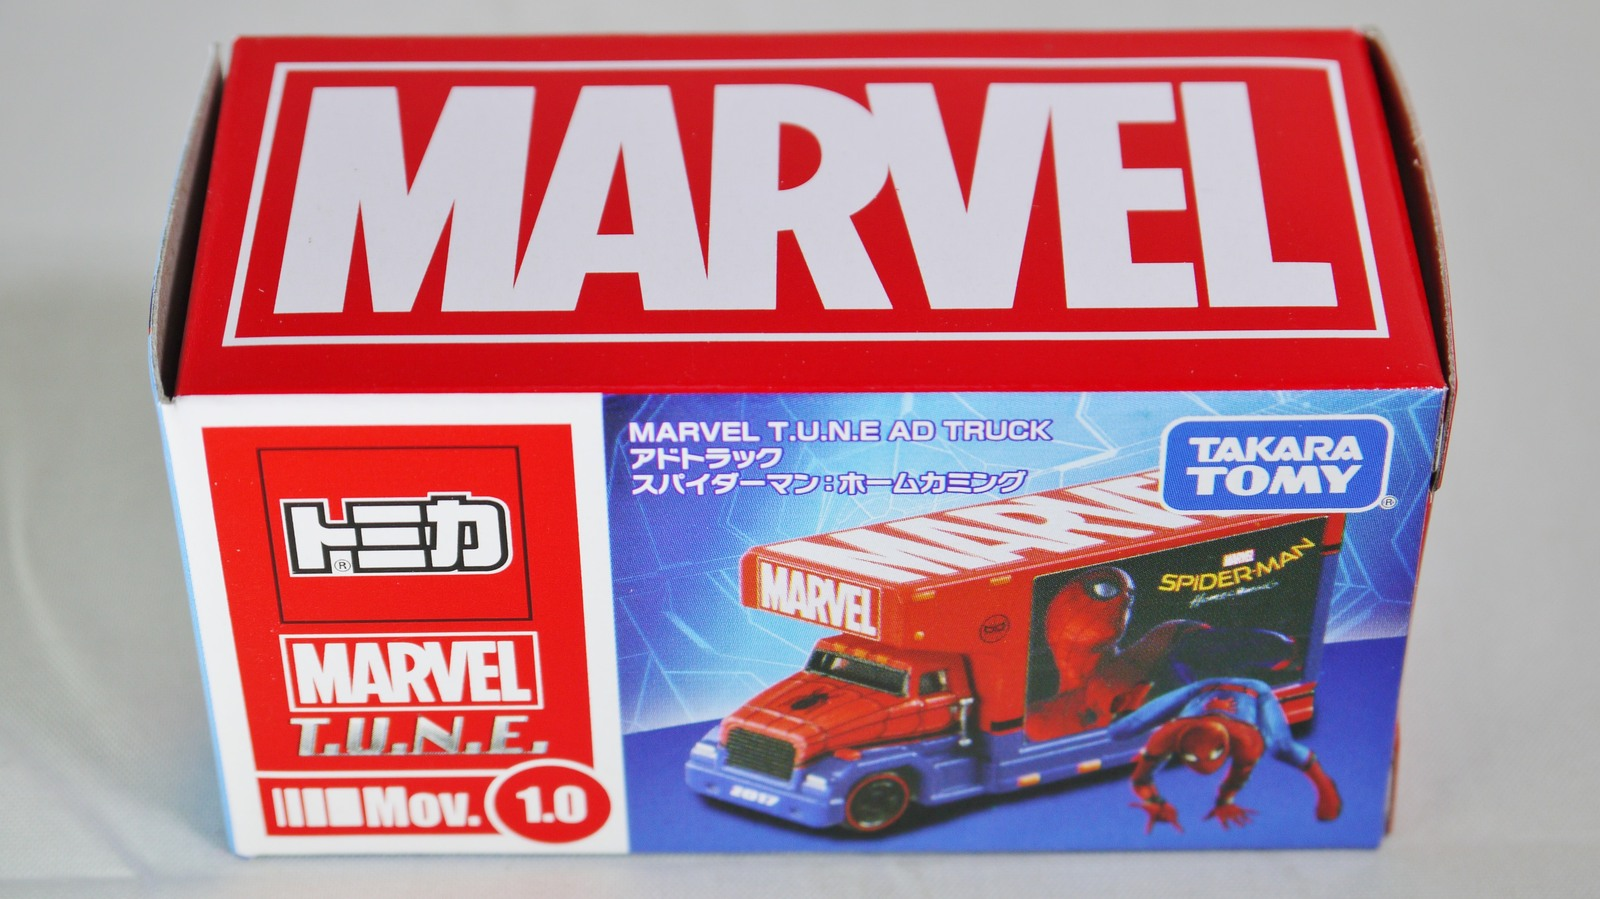 Tomica Marvel Tune Mov 10 2017 Ad Truck And 50 Similar Items Diecast No77 Hino Profia Original Takara Tomy Super Hero Spider Man Red